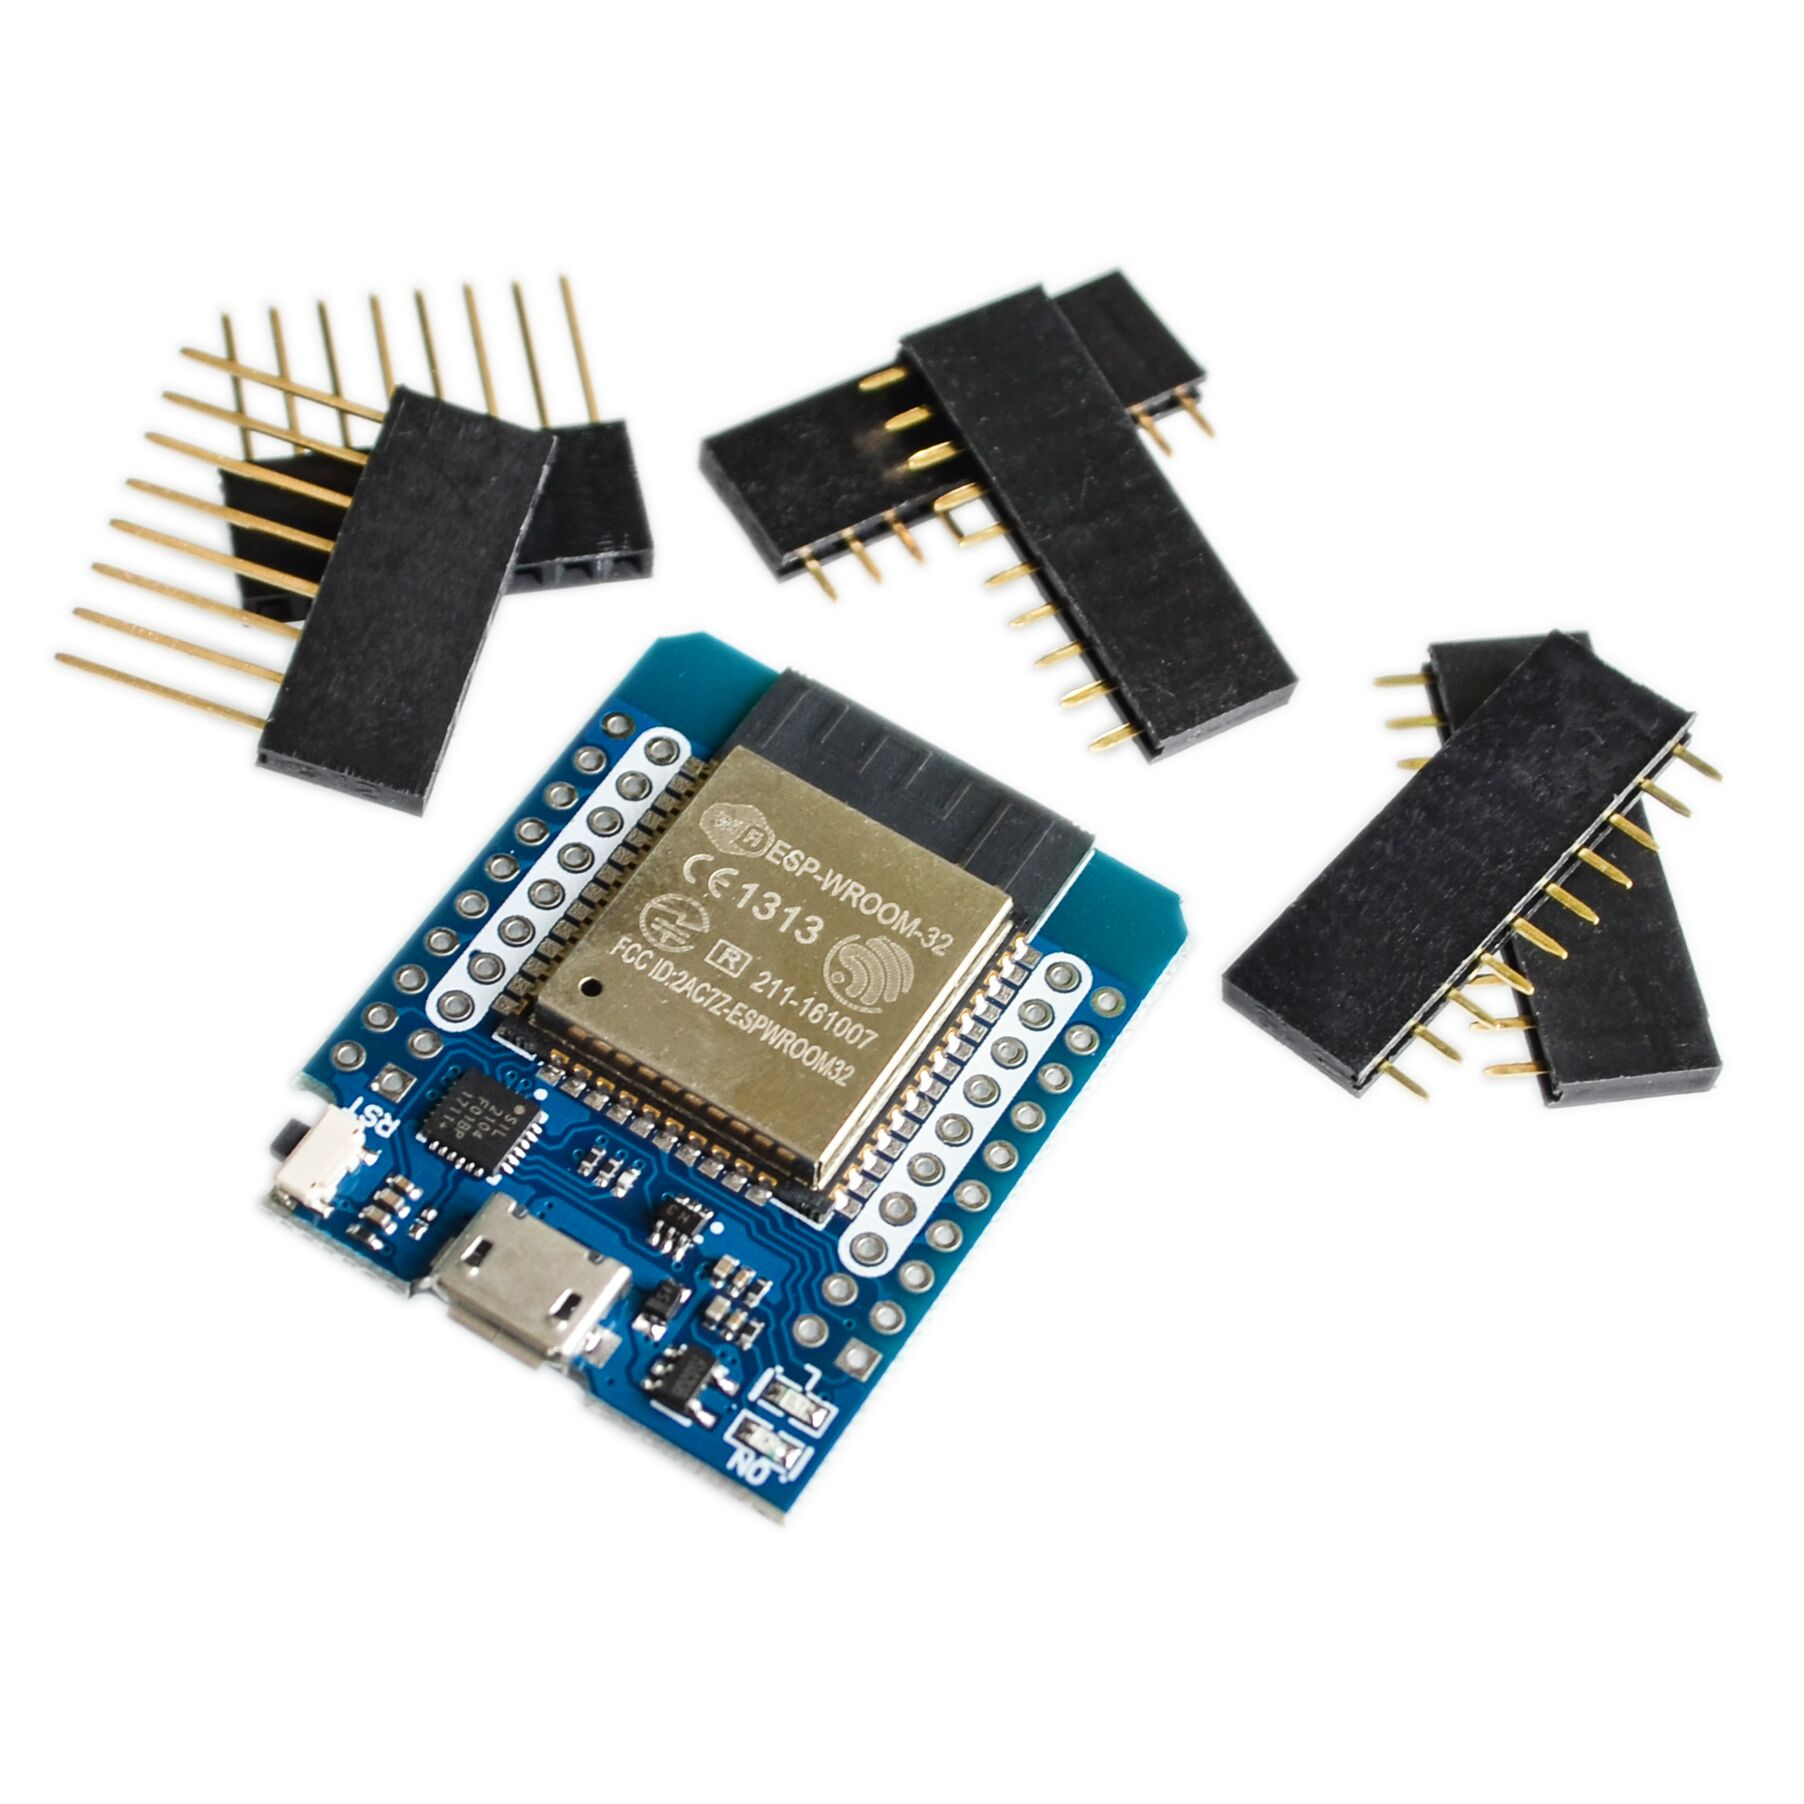 10PCS/LOT LIVE D1 mini ESP32 ESP 32 WiFi+Bluetooth Internet of Things development board based ESP8266 Fully functional-in Integrated Circuits from Electronic Components & Supplies    1